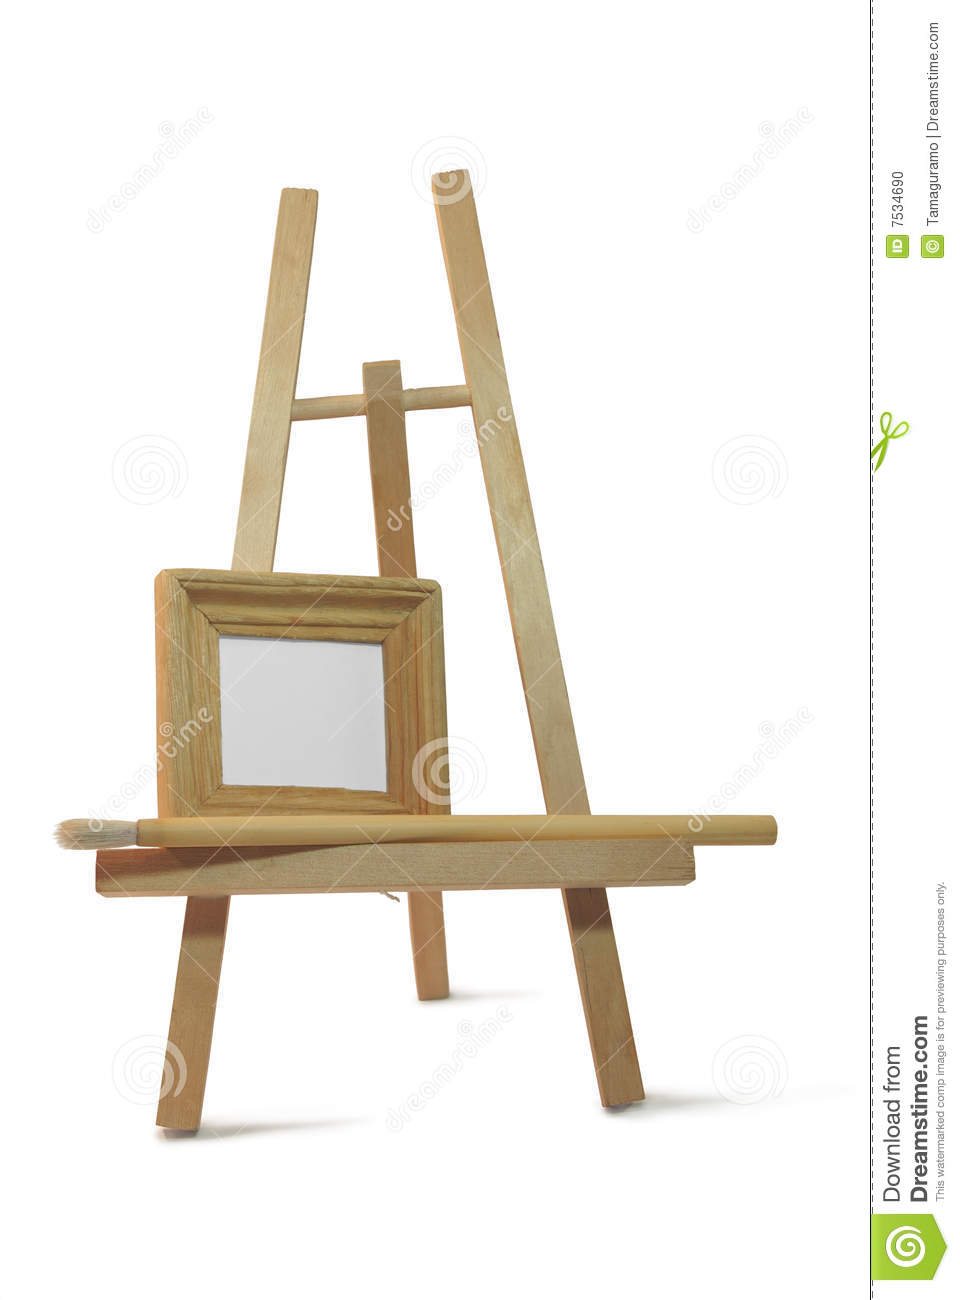 small wooden empty frame on easel